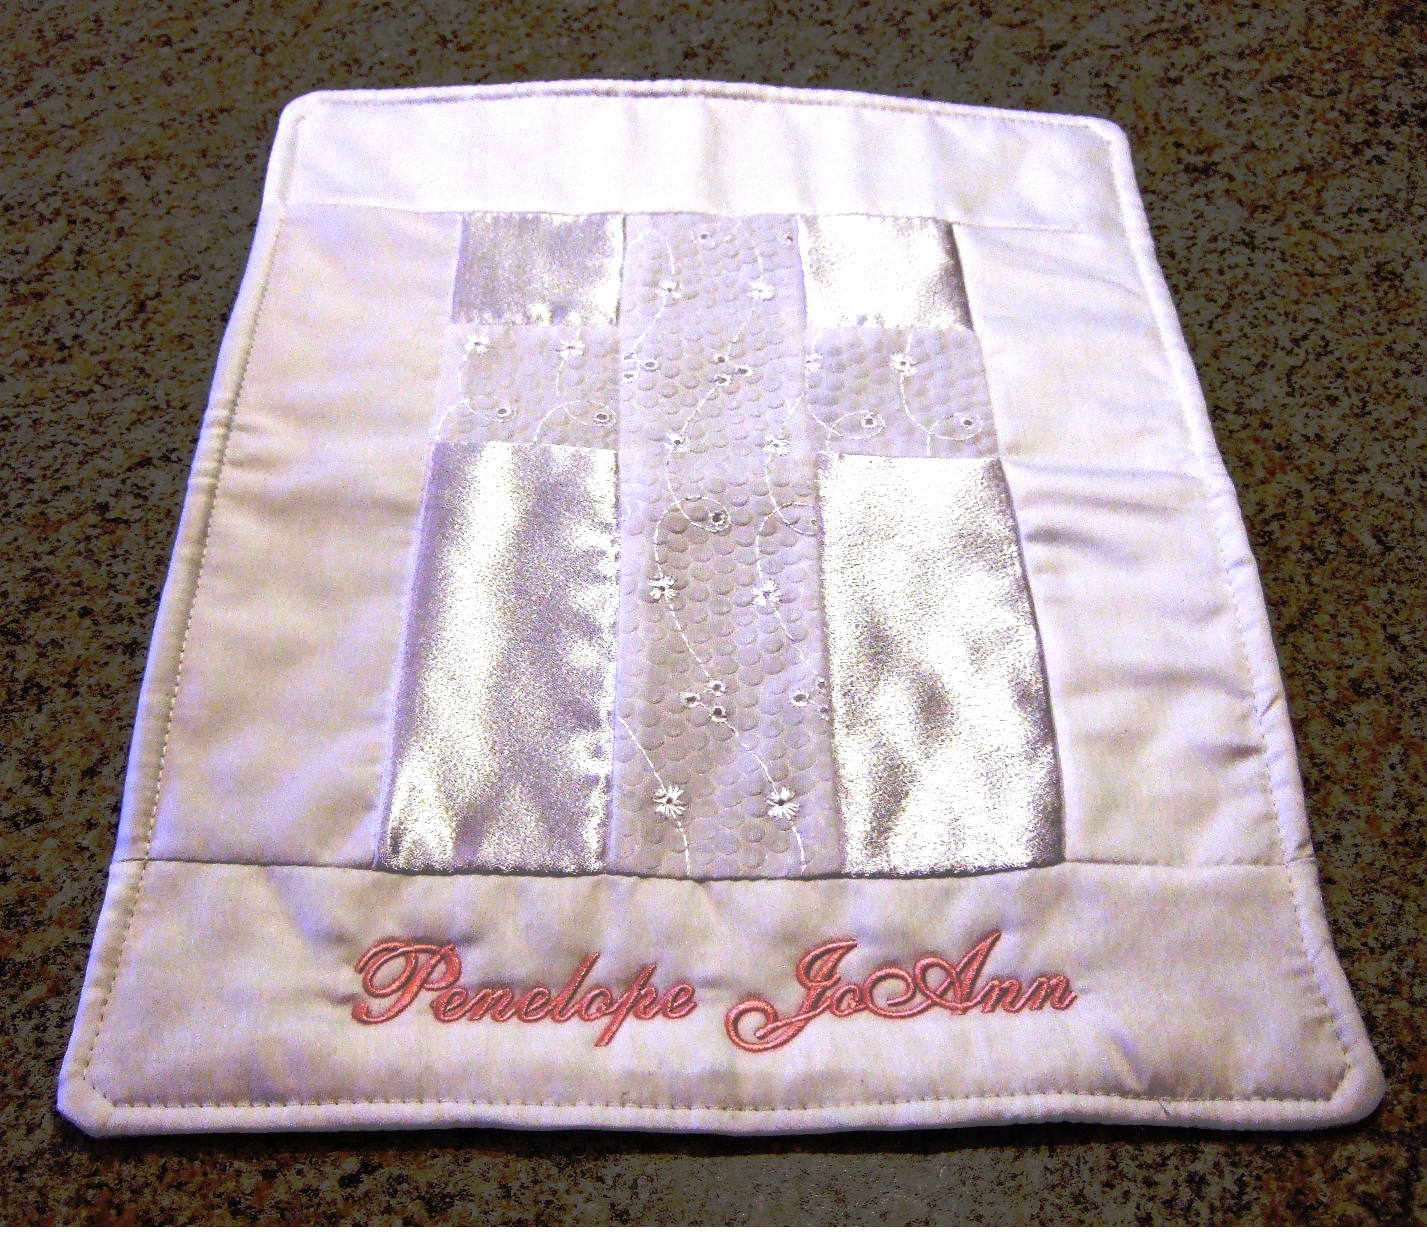 ImageBaptismal quilt with baby's name